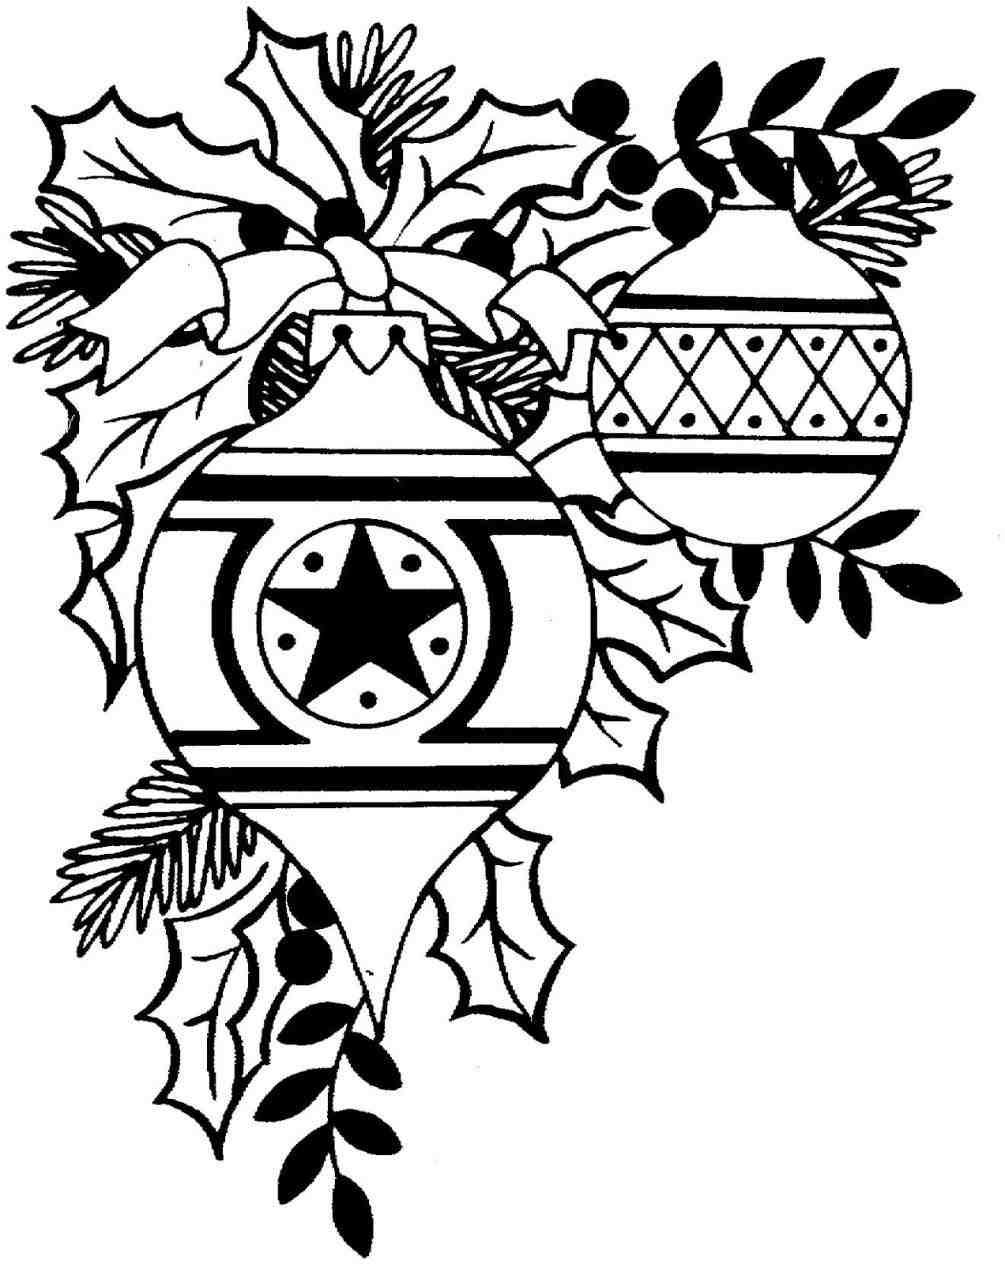 1005x1264 Pa Christmas Clip Art Free Black And White Border Border Christmas